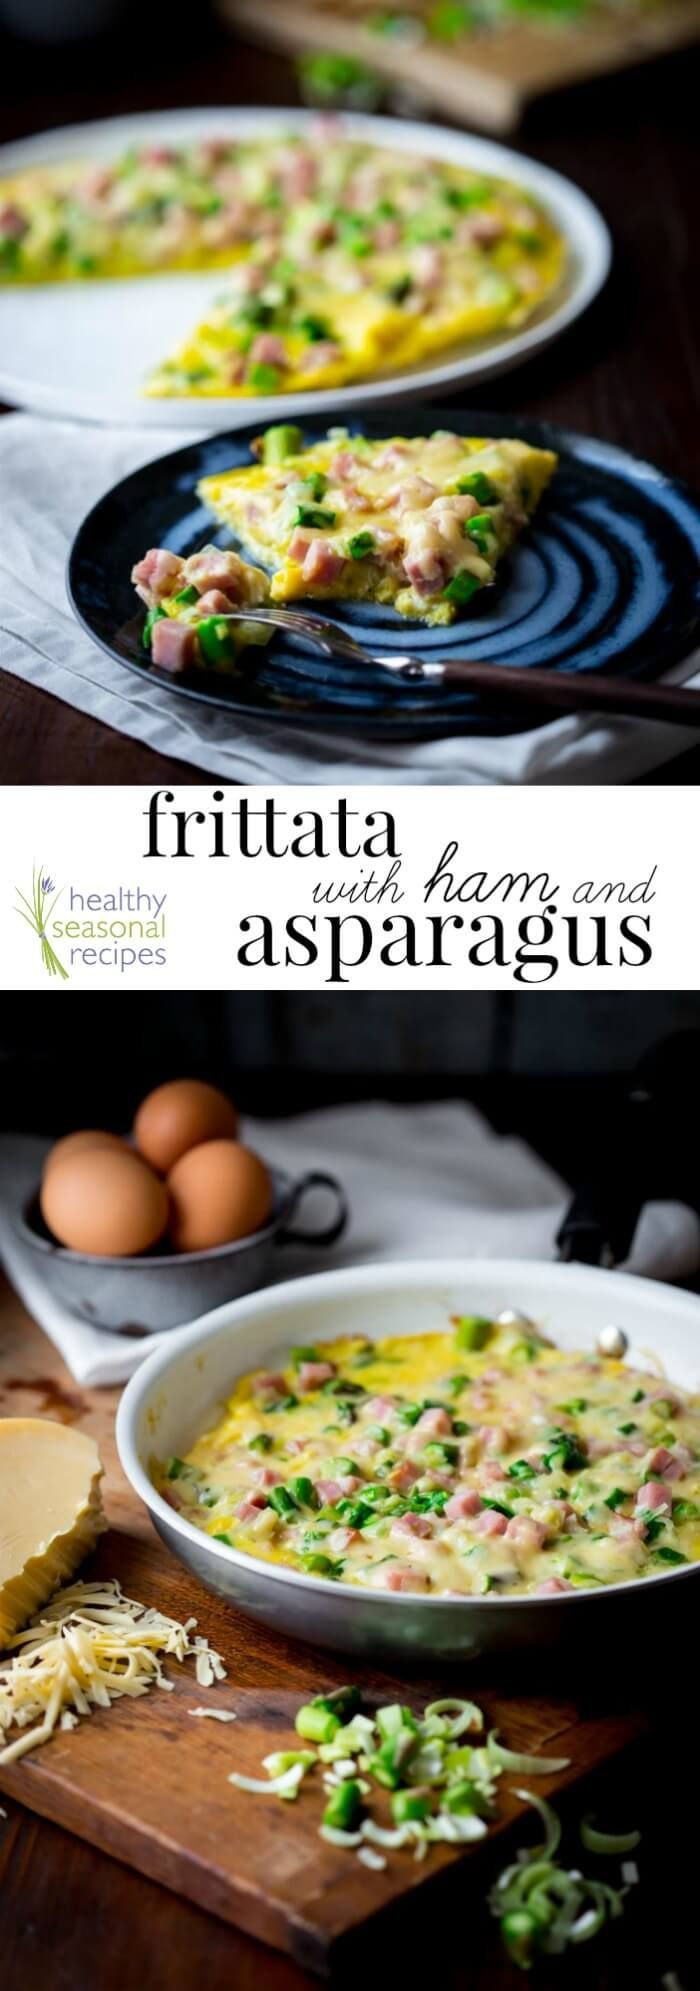 Frittata with Ham and Asparagus. Ready in just 20 minutes and gives you 23 grams of protein! Perfect for Easter brunch or a weeknight meal. Healthy Sesonal Recipes | Healthy Seasonal